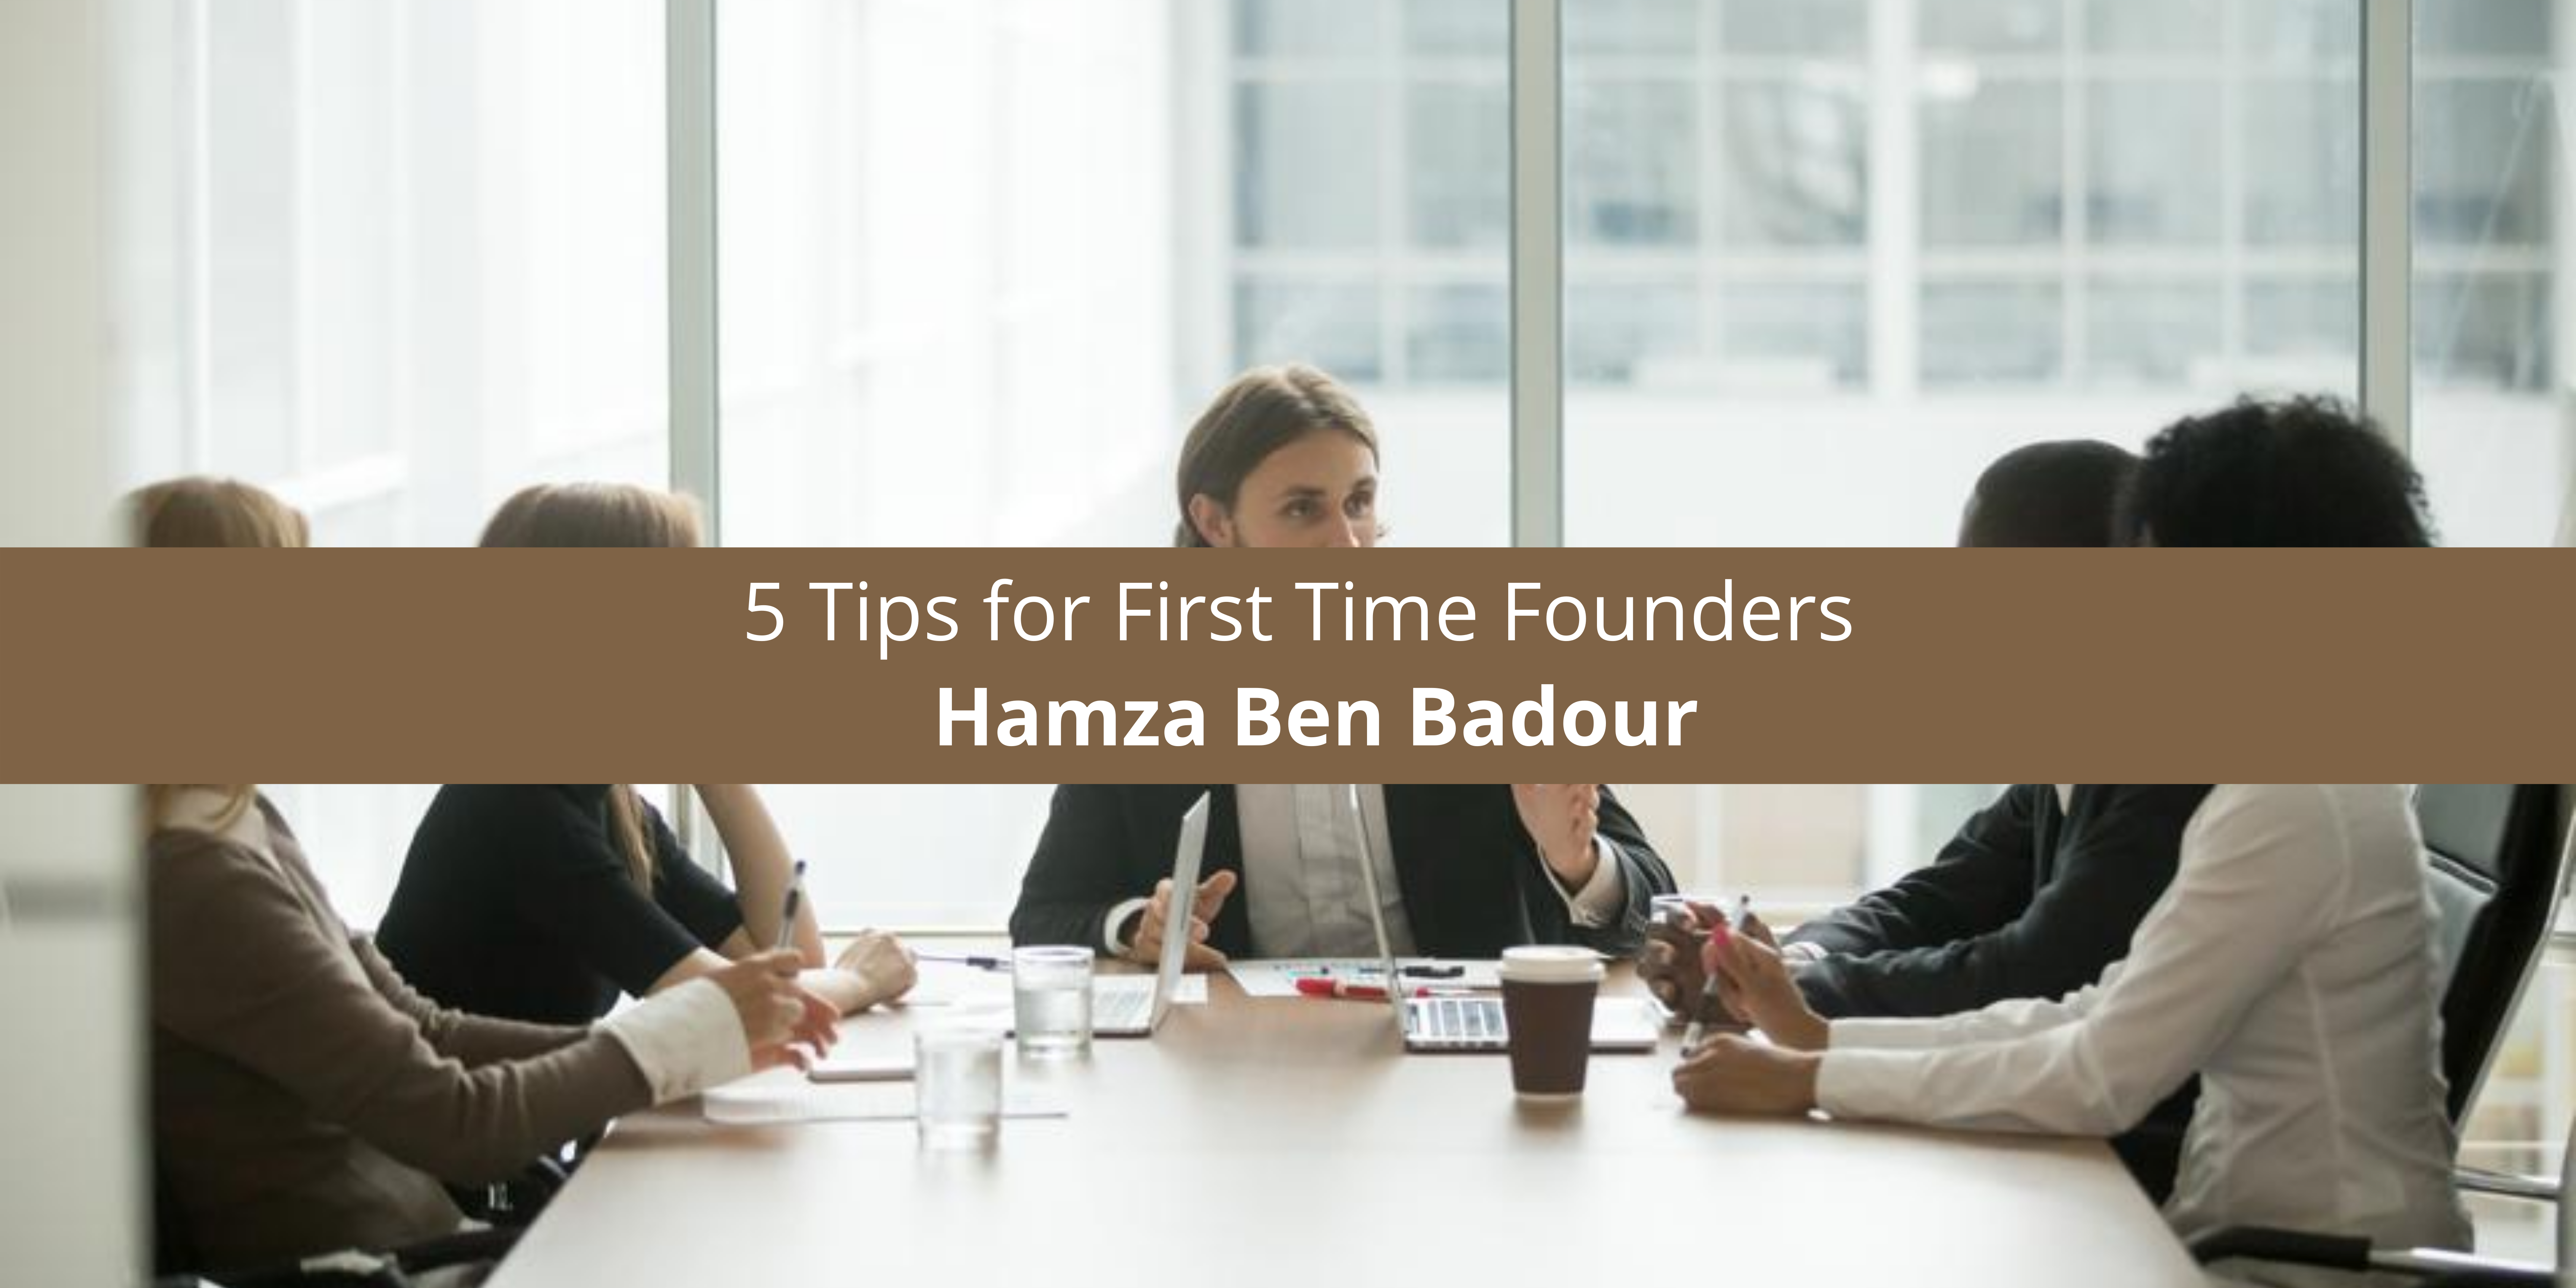 Hamza Ben Badour 5 Tips for First Time Founders